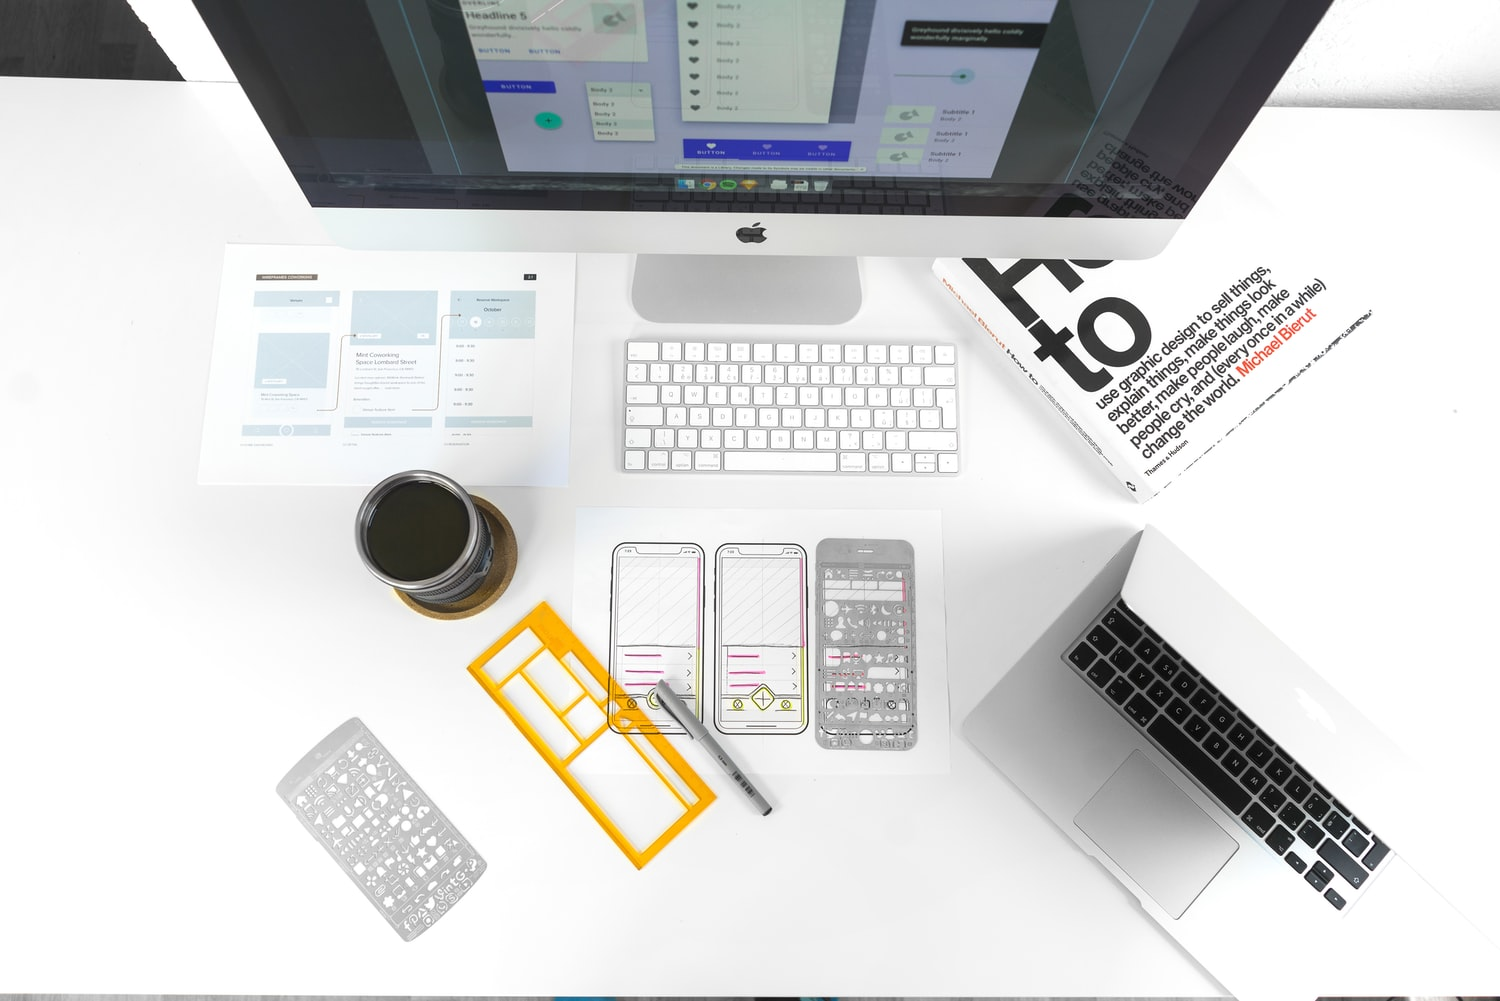 The Motion Design Shift: How Social Media Has Changed The Industry